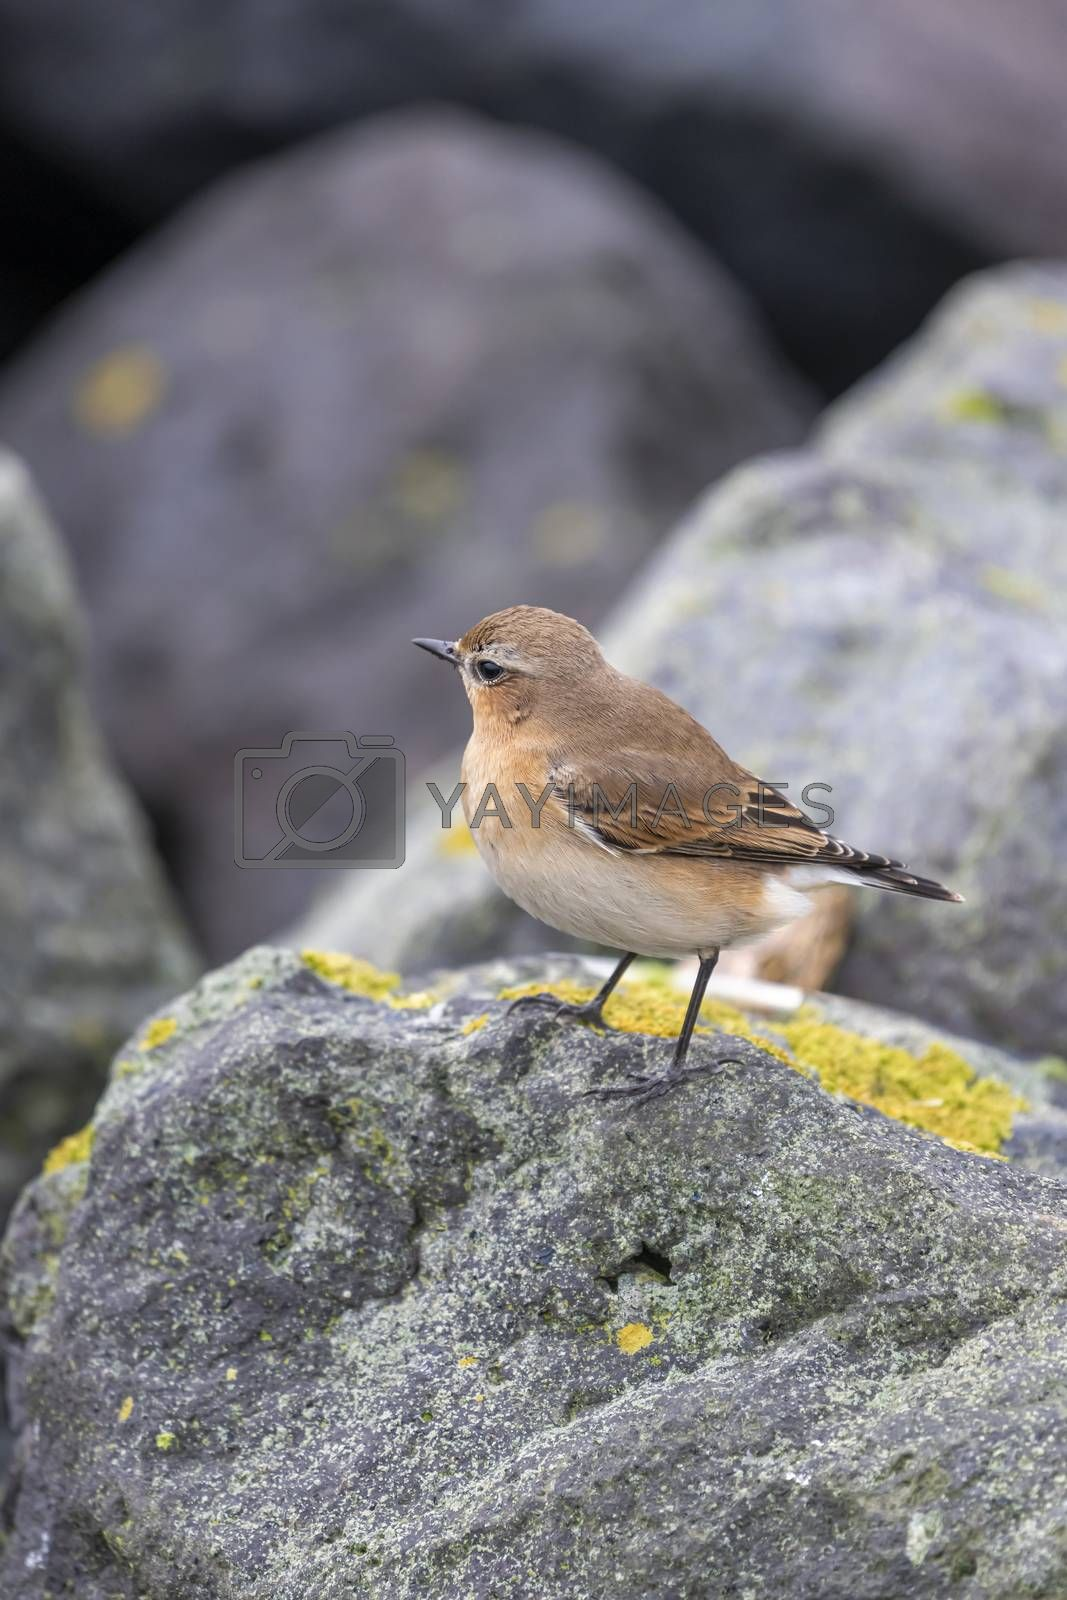 Songbird The Wheatear Oenanthe oenanthe   by Tofotografie